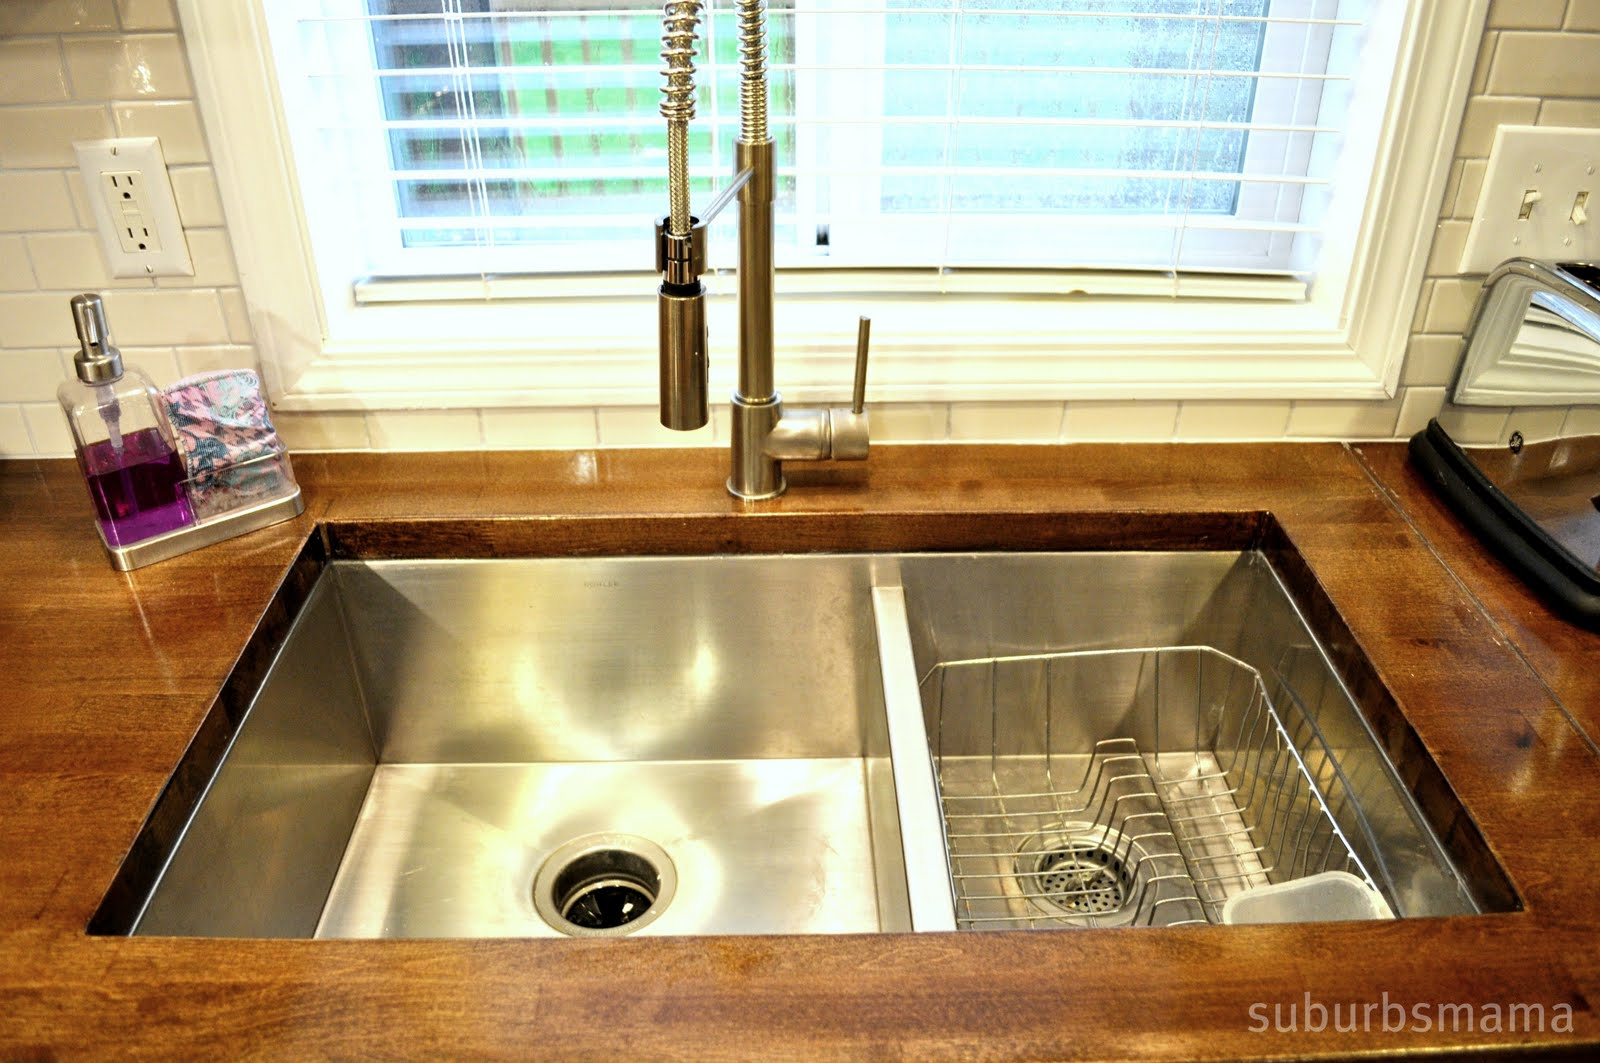 Suburbs Mama: Our Butcher Block Counters